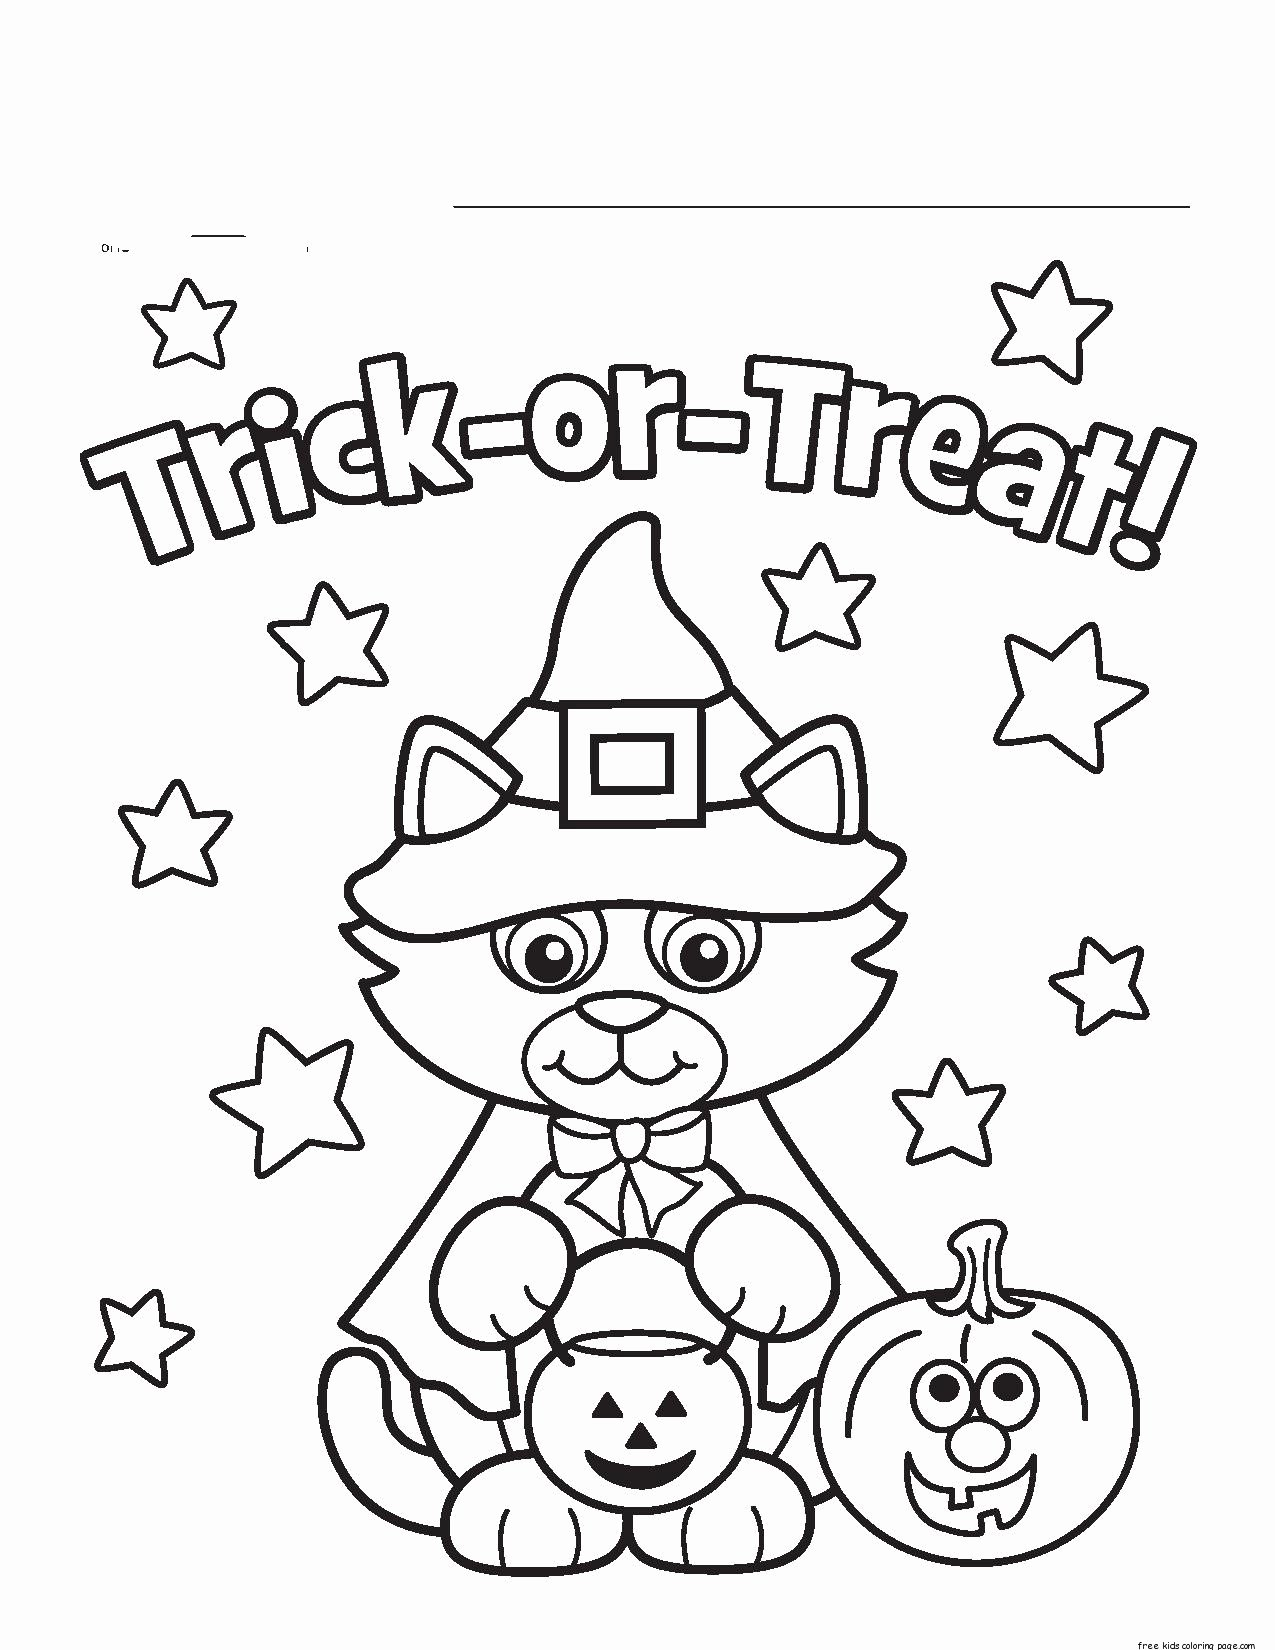 Halloween Coloring Worksheets for Preschoolers Best Of 56 Halloween Coloring Pages for toddlers Inspirations